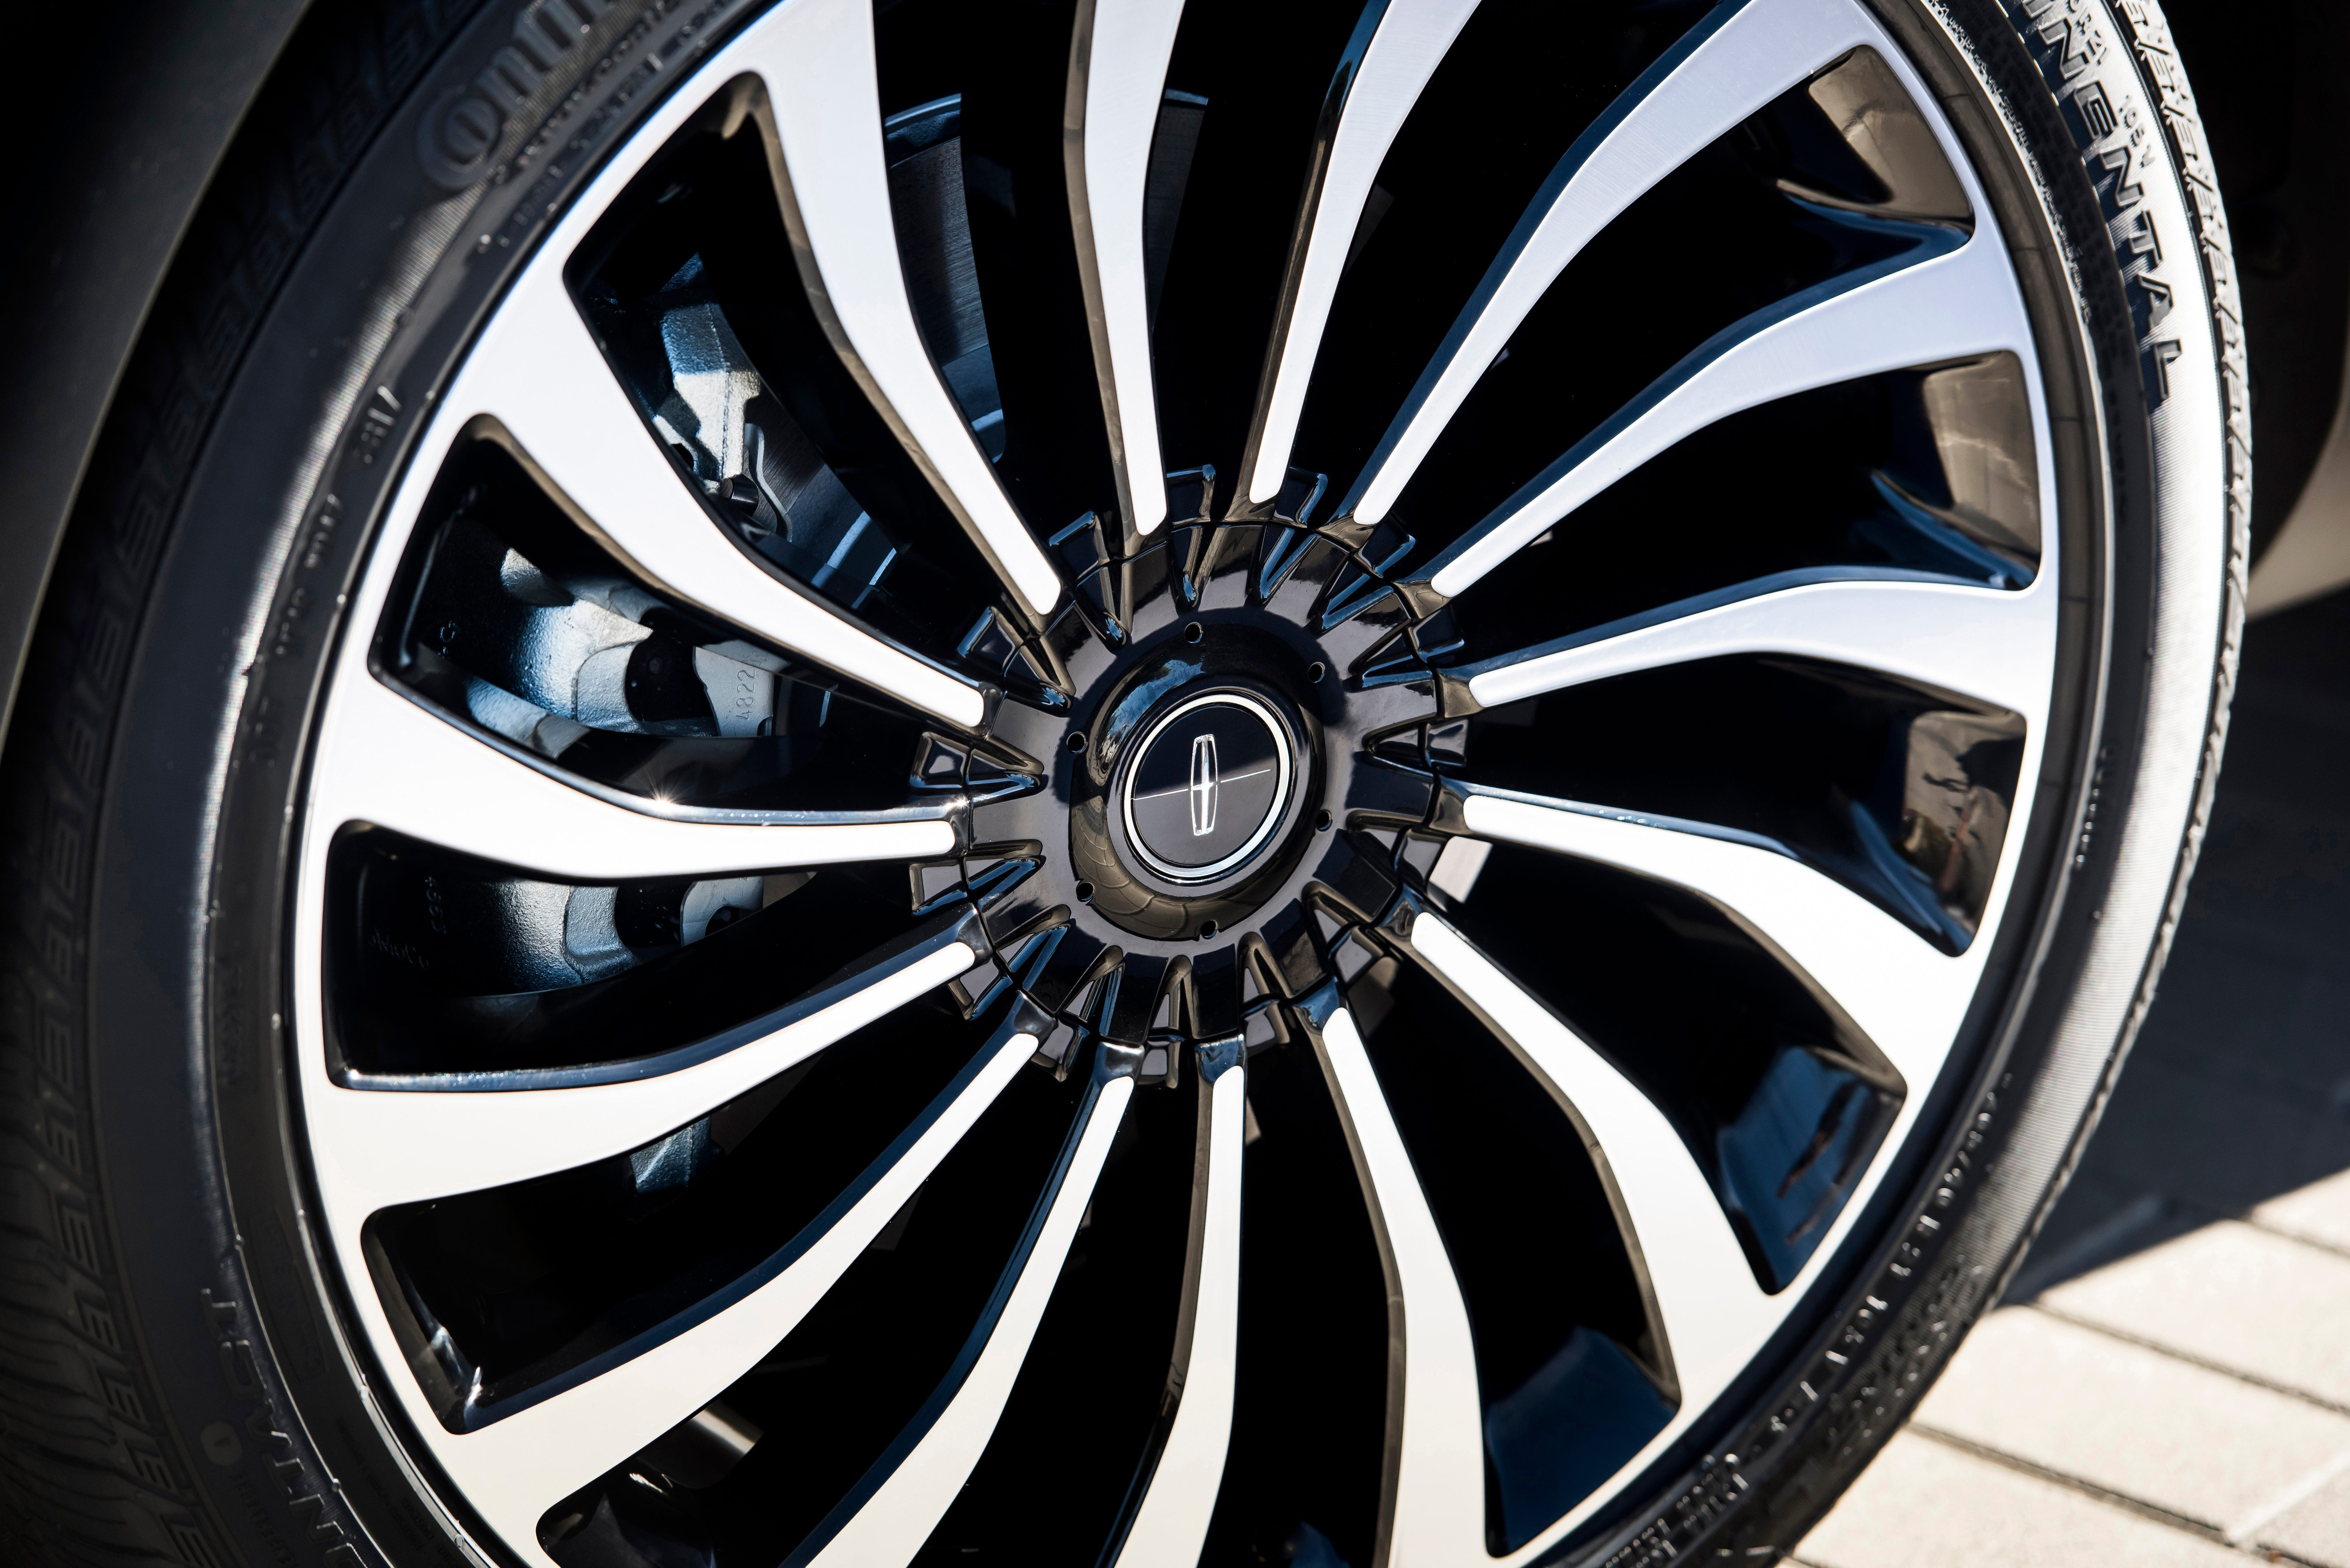 A new wheel selection allows clients to order a Lincoln